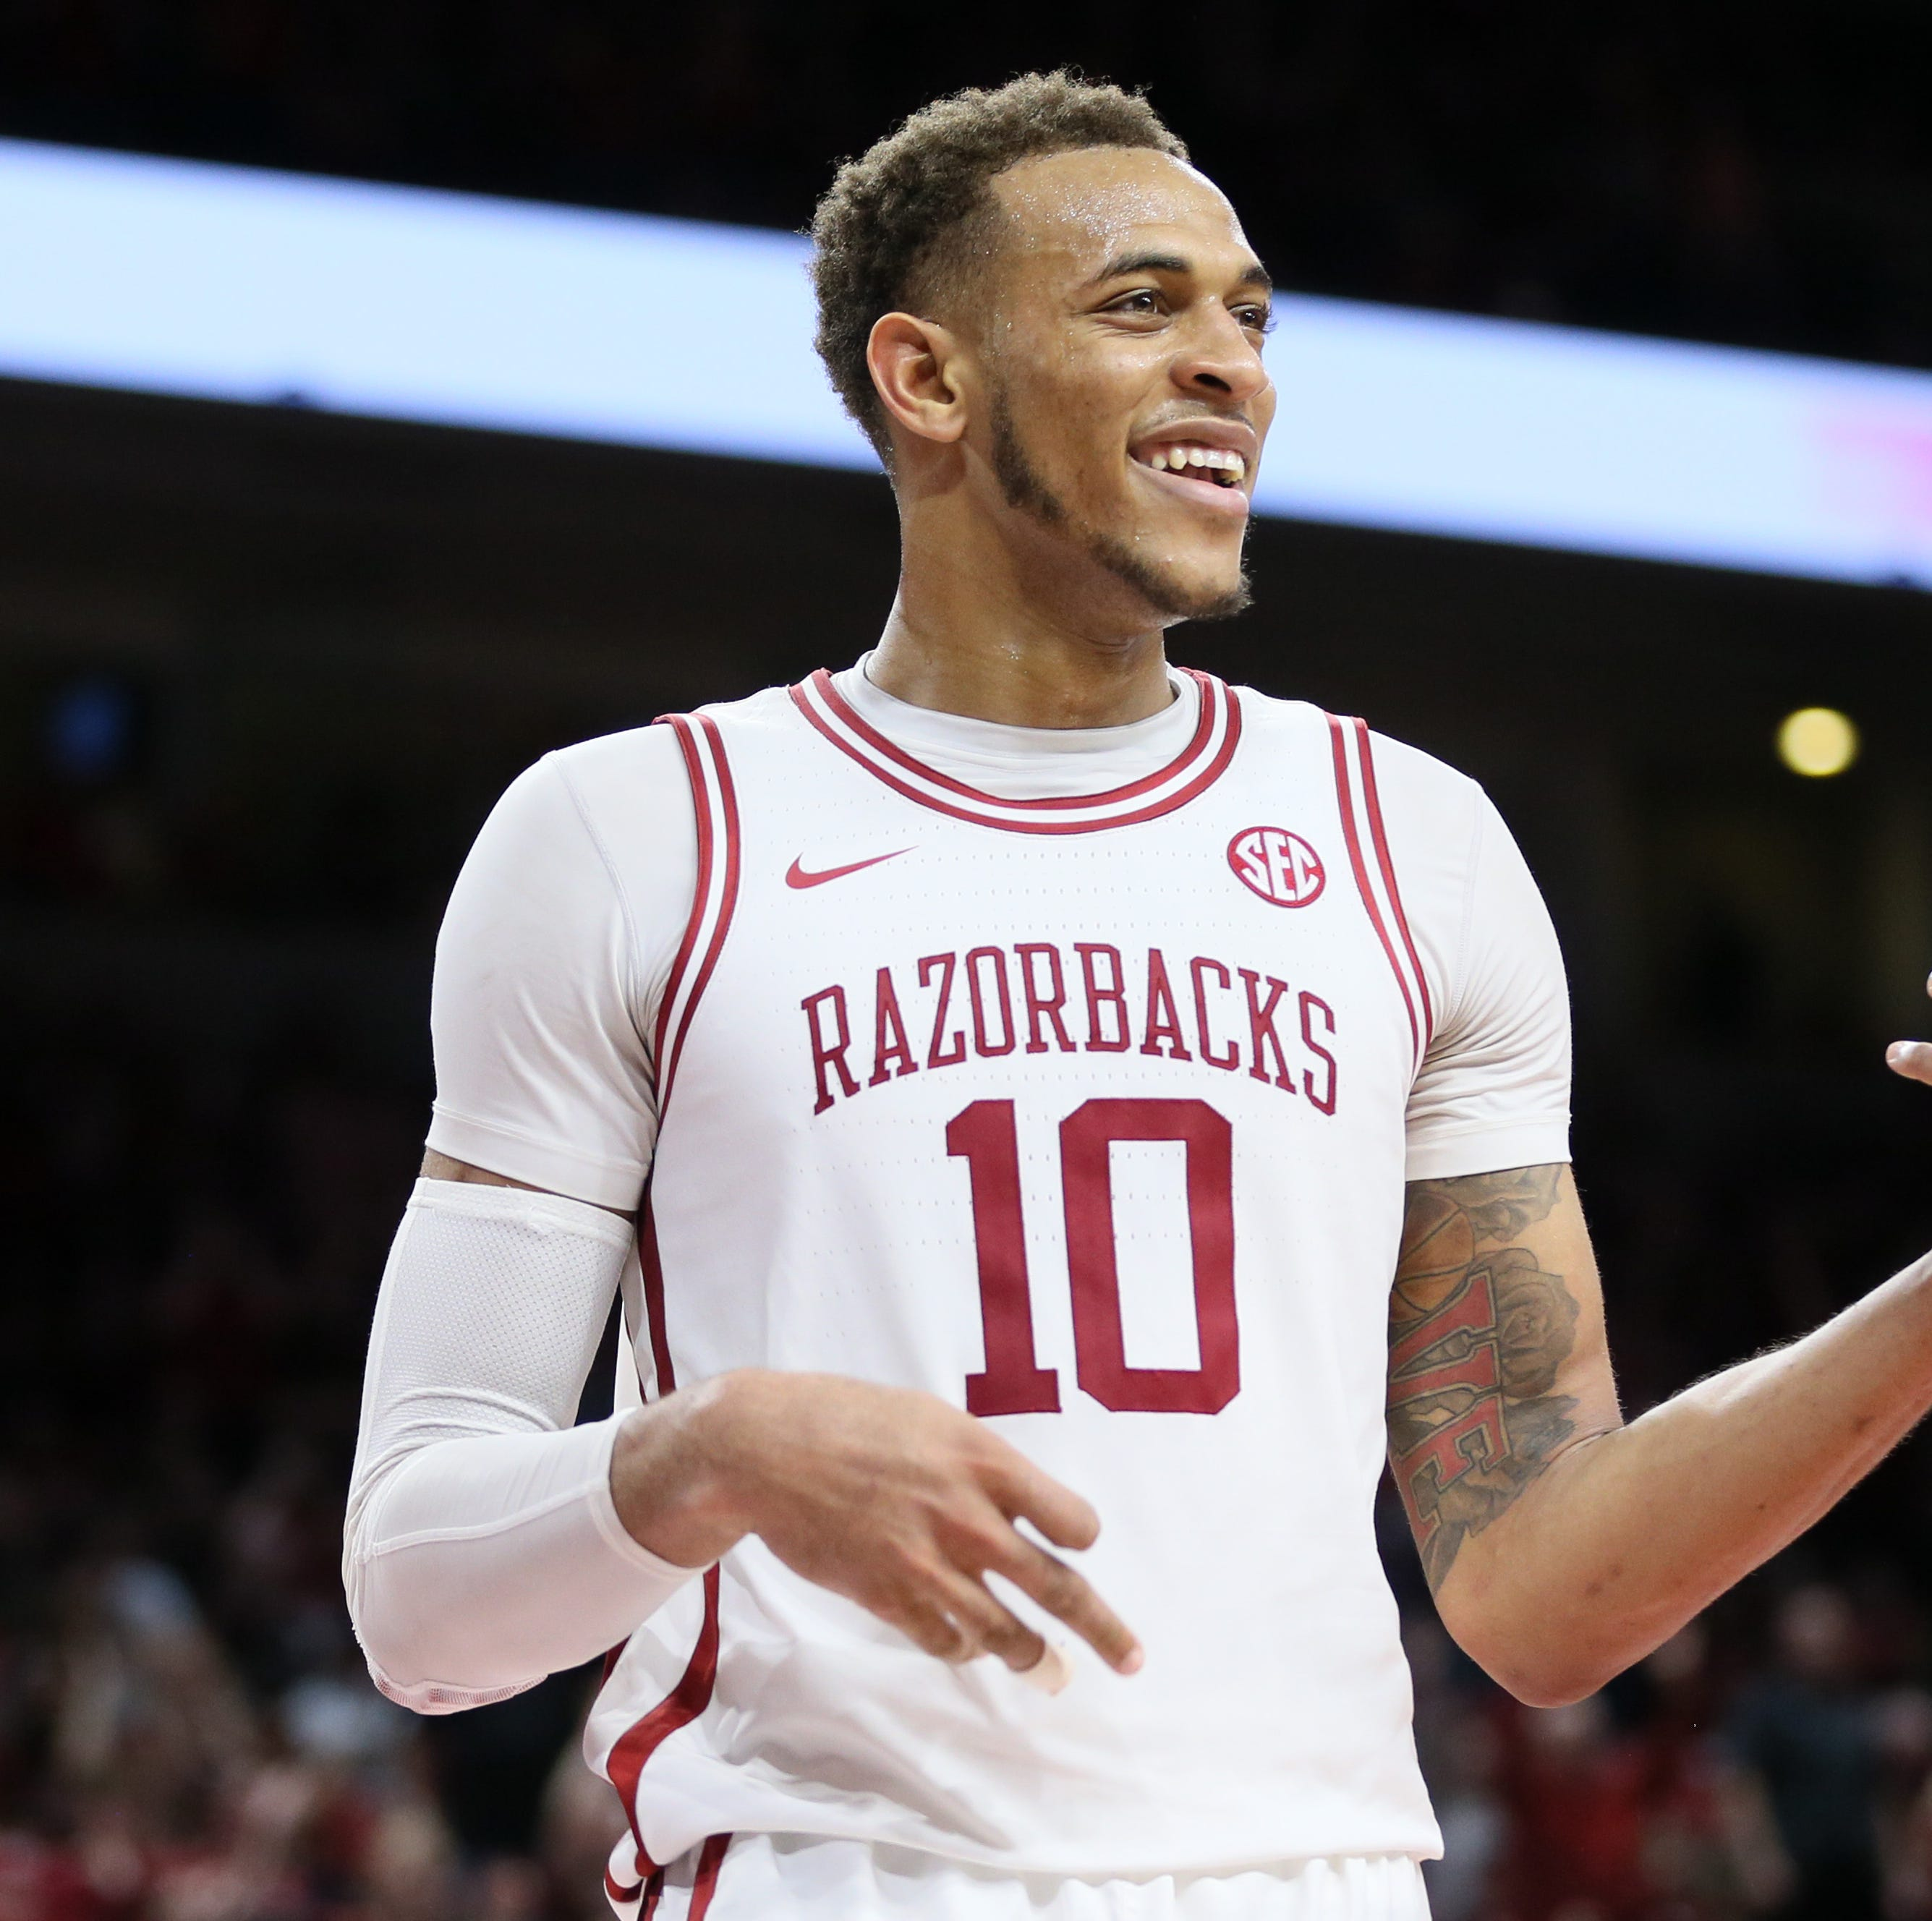 Arkansas' NBA draft prospect is skipping NIT, will IU's suit up in second round?